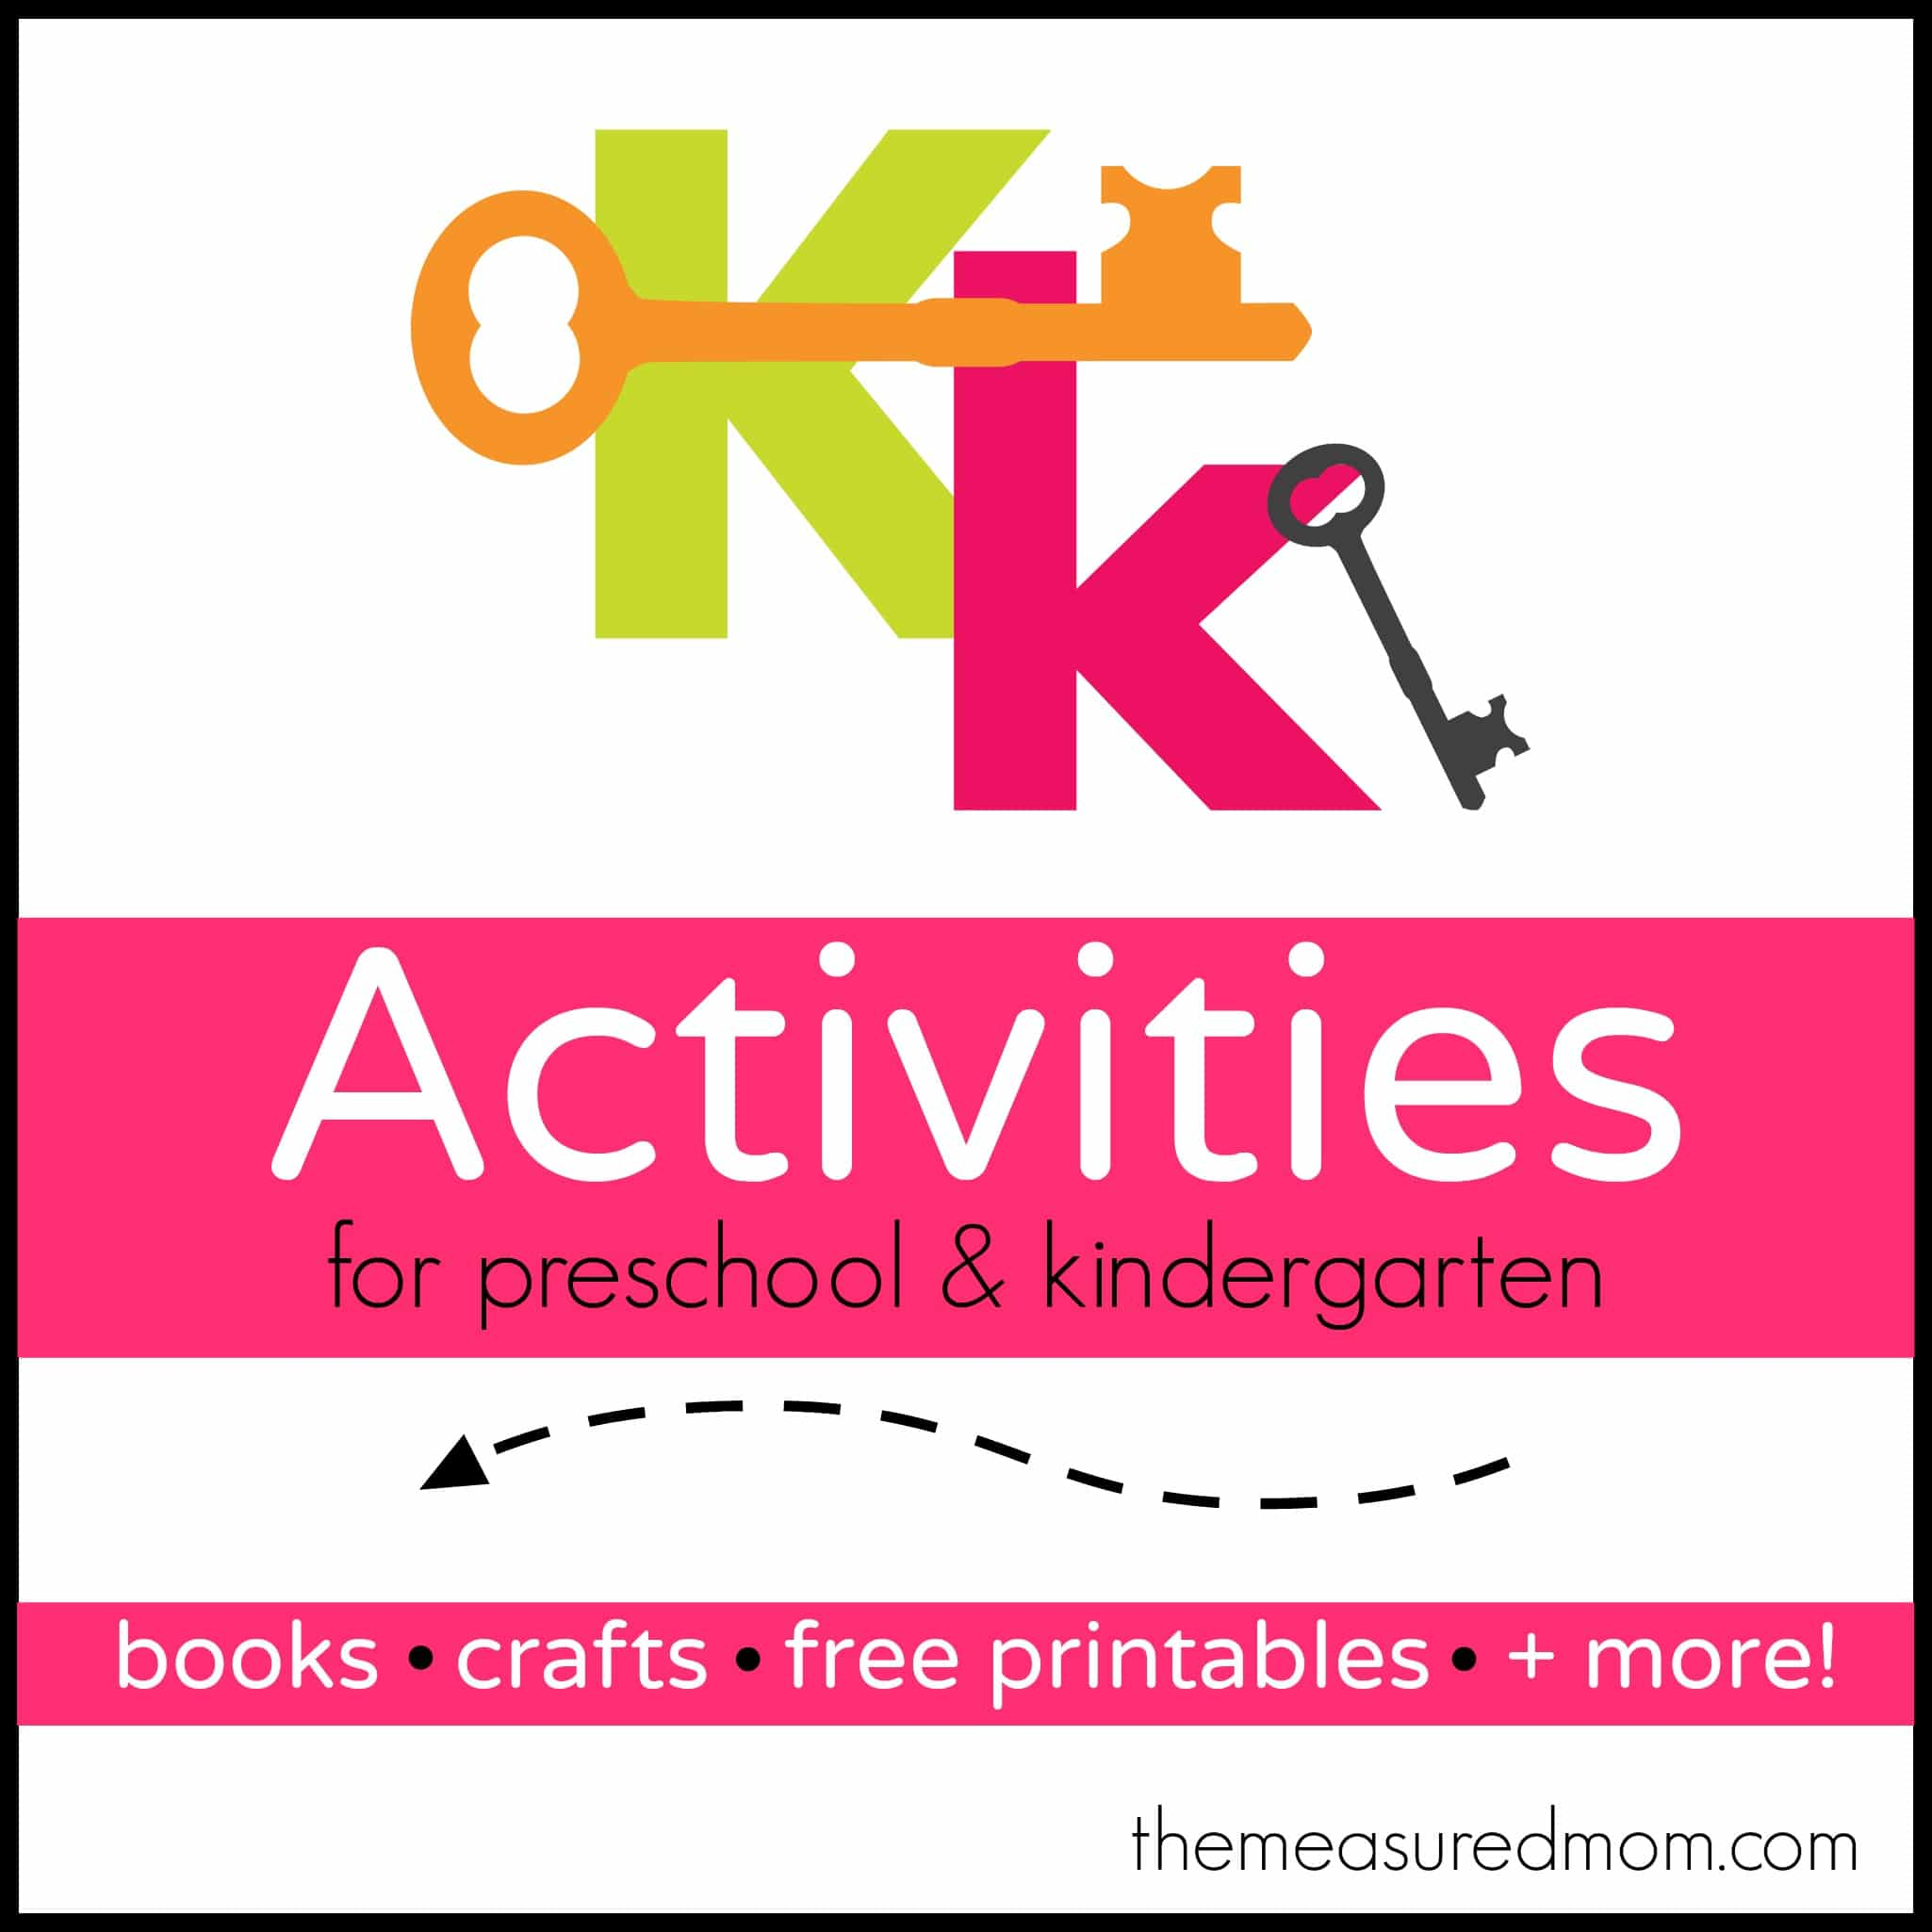 Letter K Activities the measured mom Rhymes for Letter K: Free printable mini book